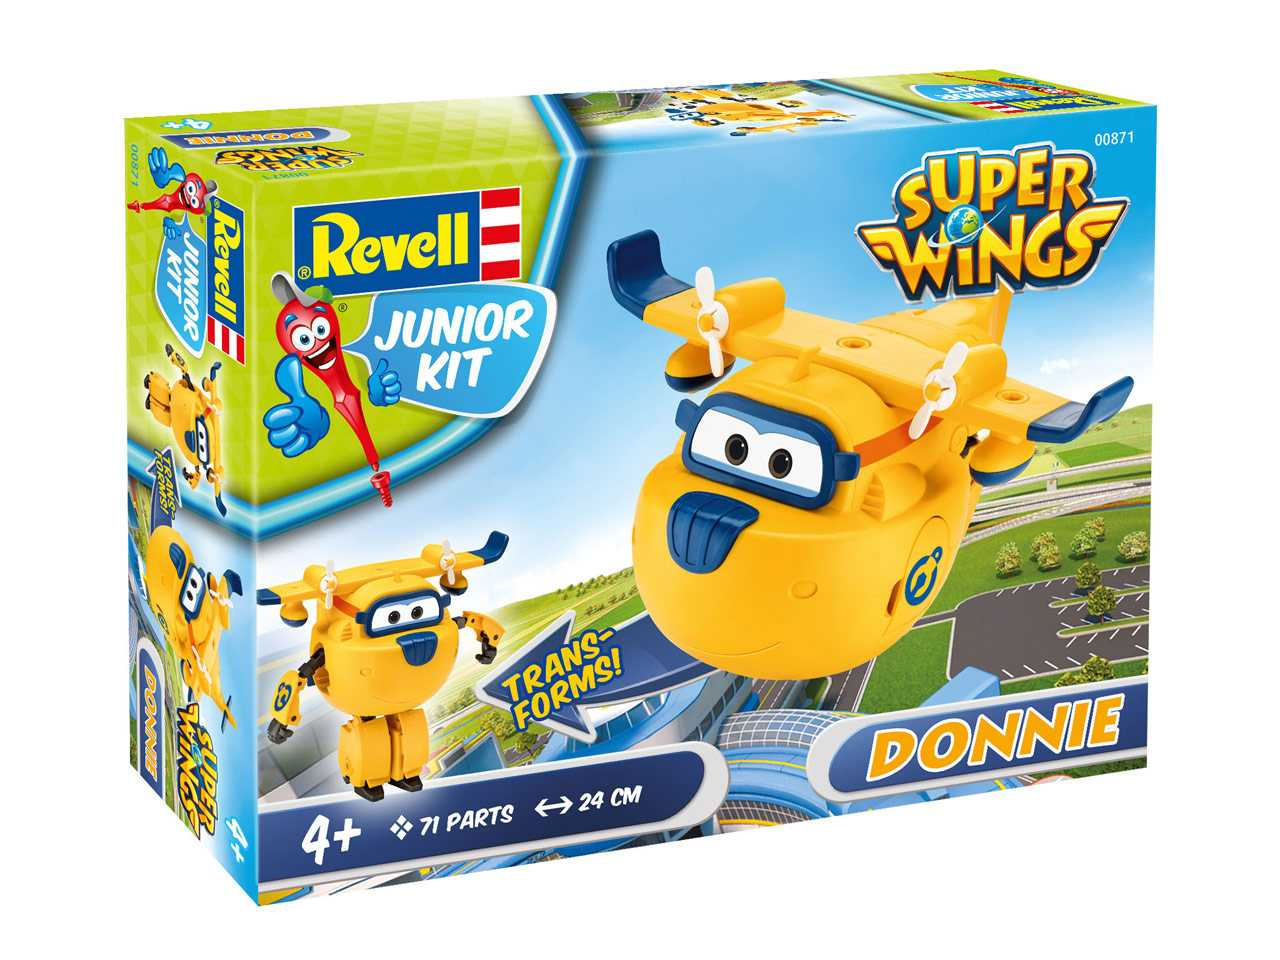 1:20 Super Wings Donnie (Junior Kit)